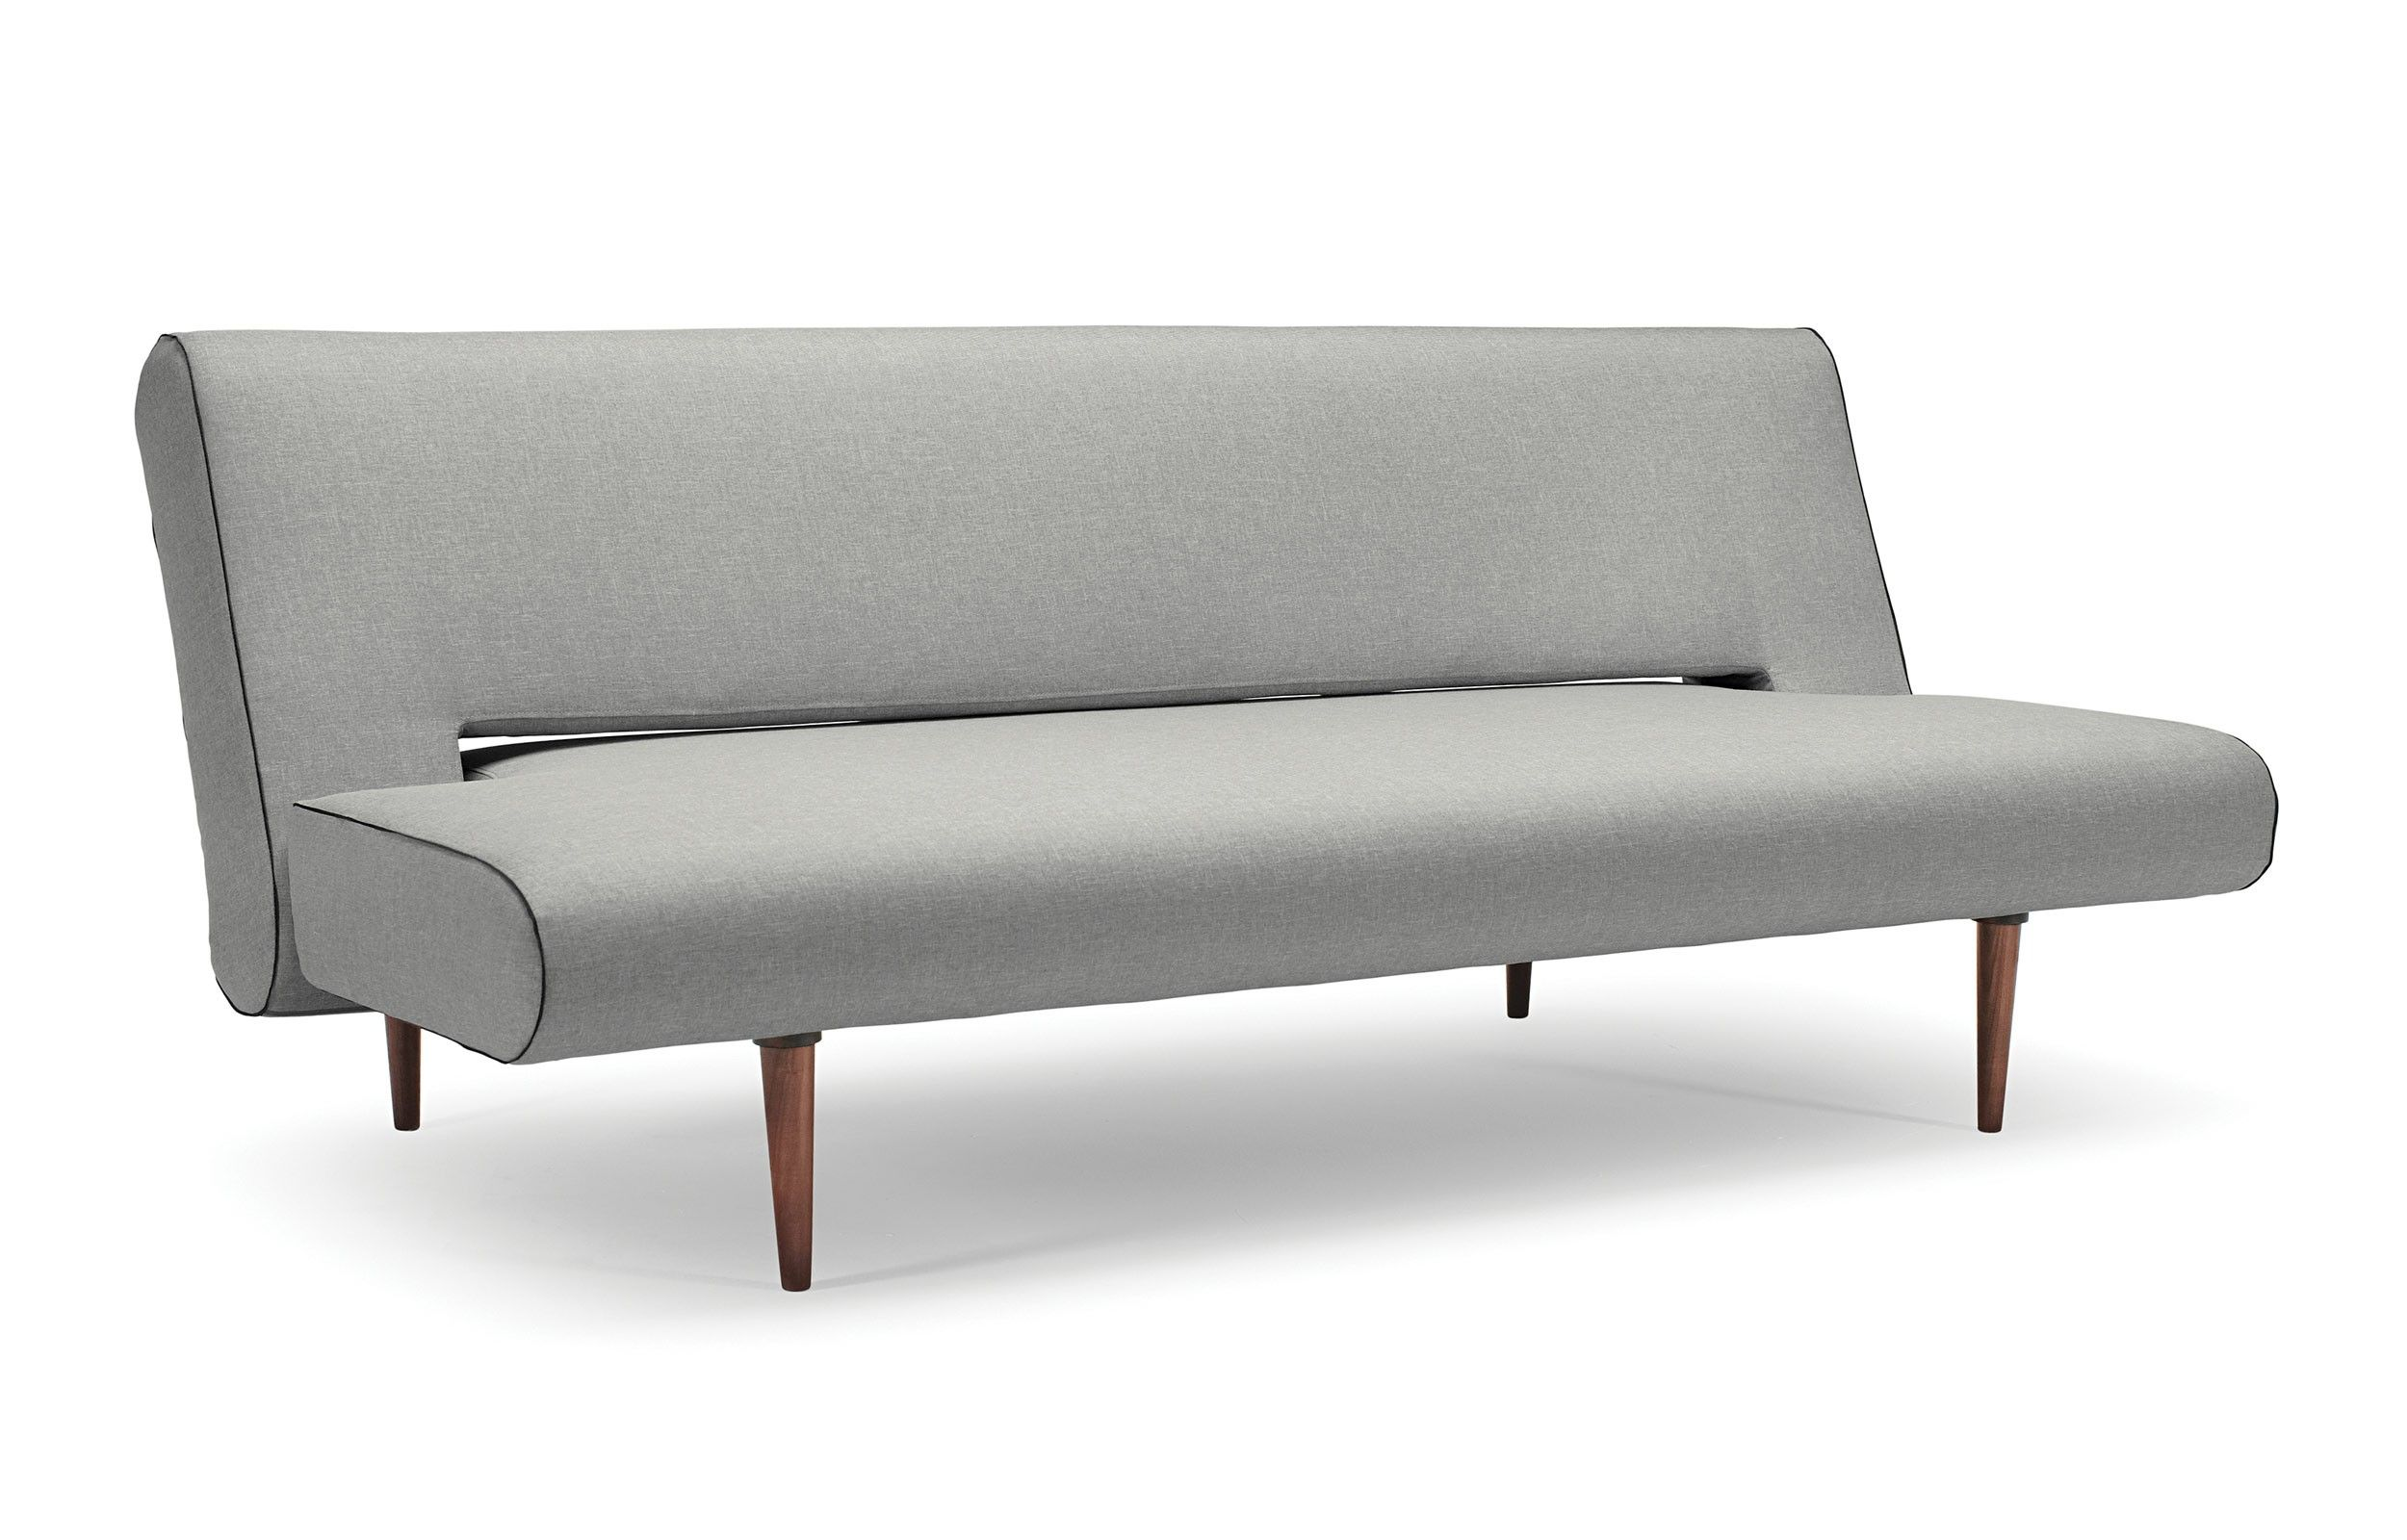 The Unfurl Sofa Bed Is A Simple Understated Convertible Sofa Bed That Was Built To Last The Dark Stained Wood Leg Contemporary Sofa Bed Sofa Bed Design Sofa